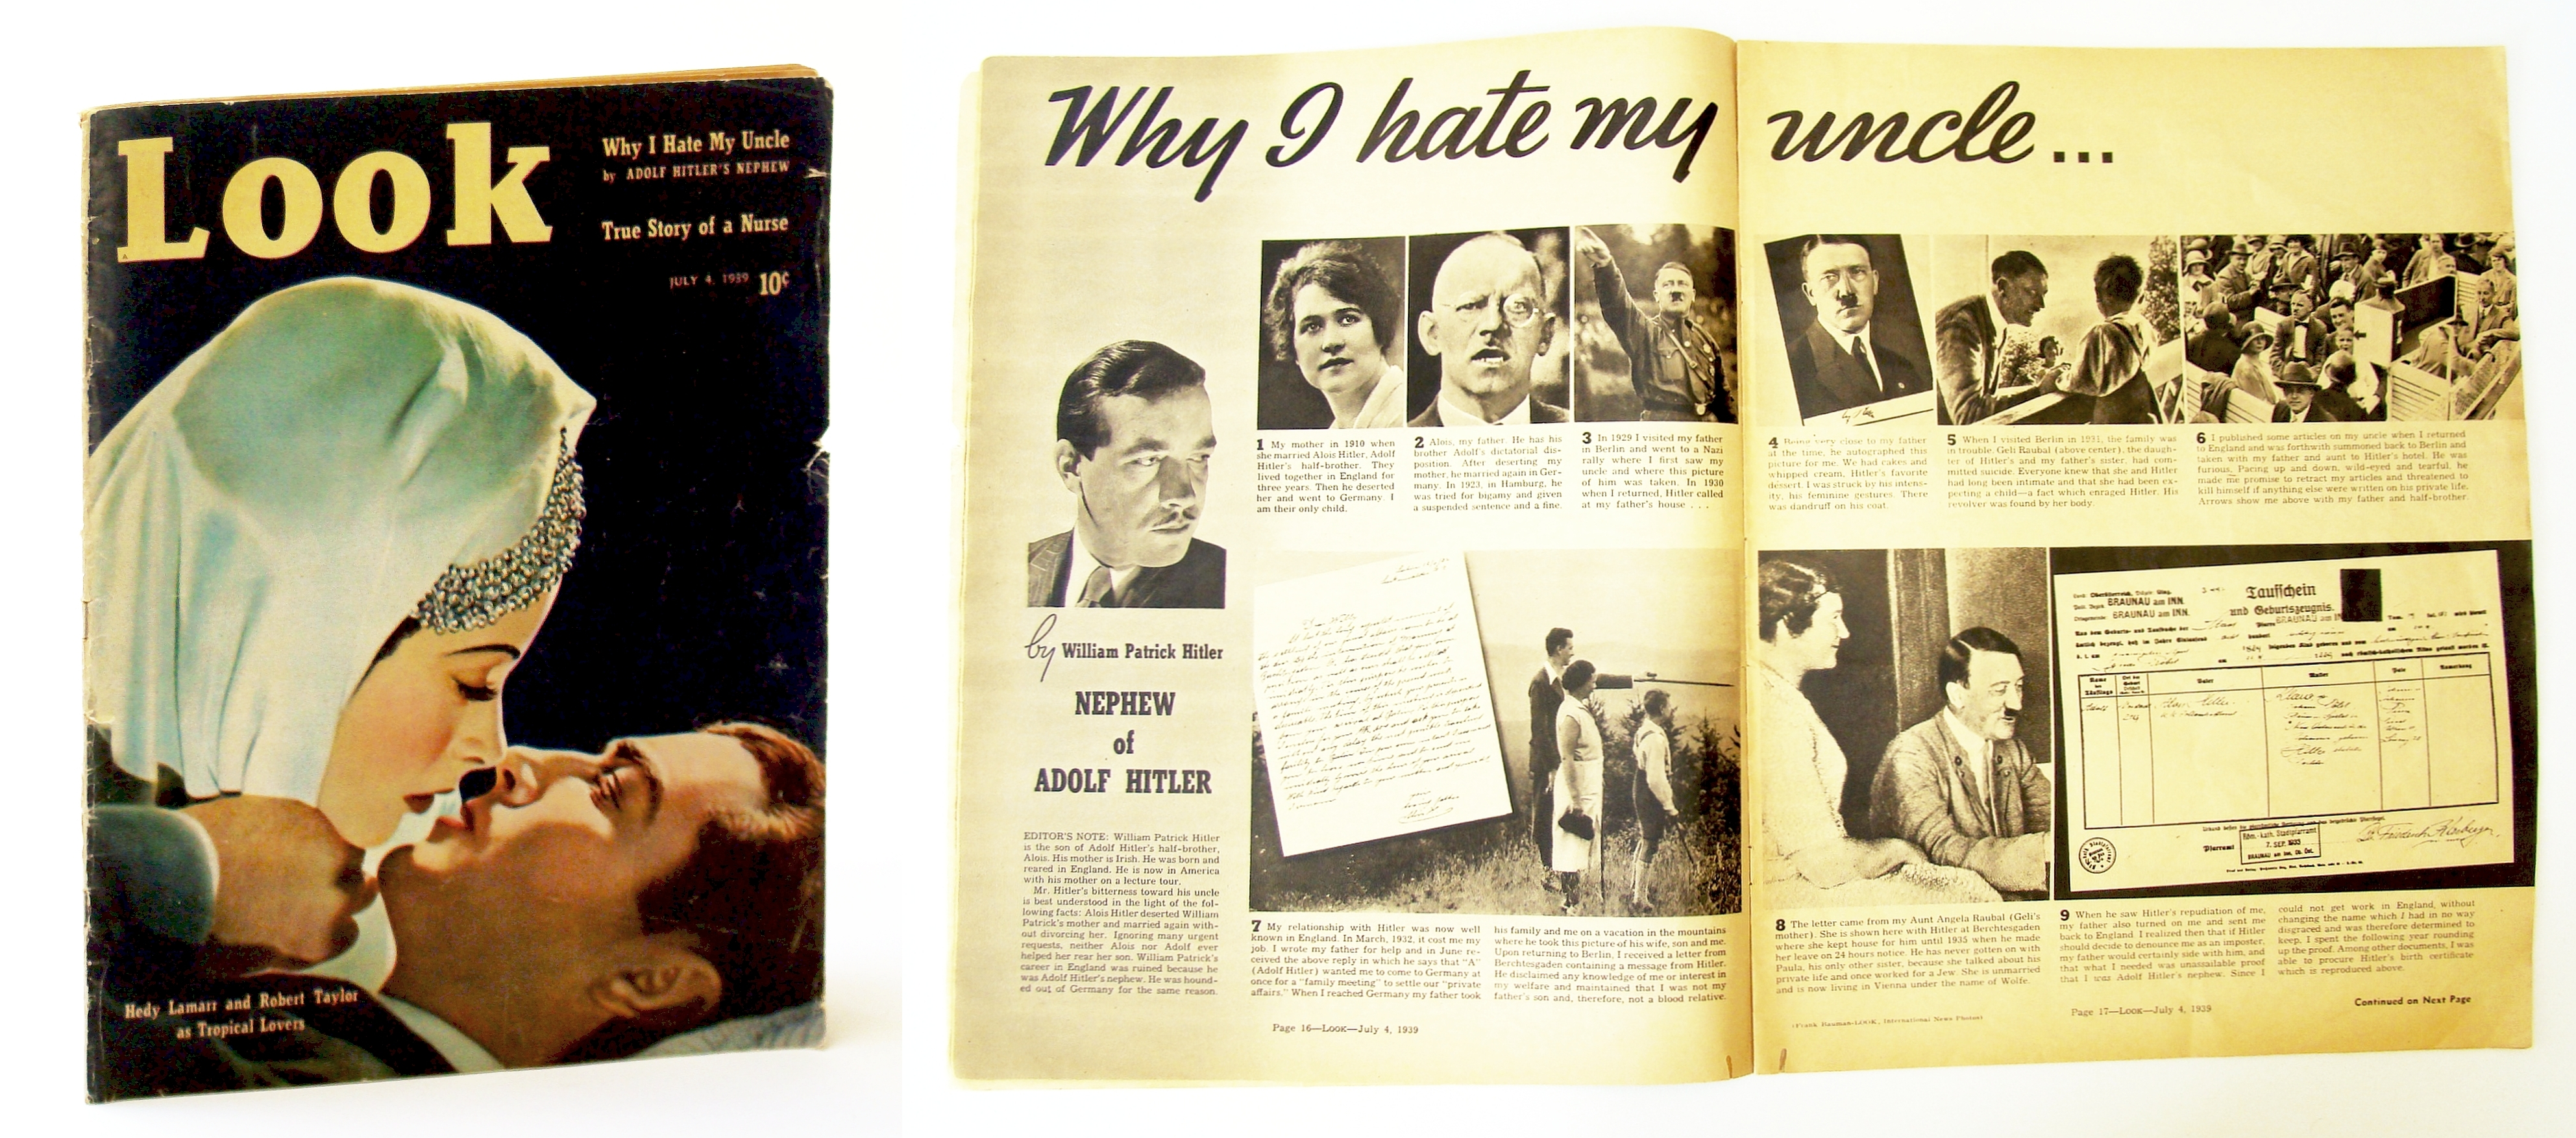 Image for Look Magazine, July 4, 1939 - Why I Hate My Uncle, By Adolph Hitler's Nephew